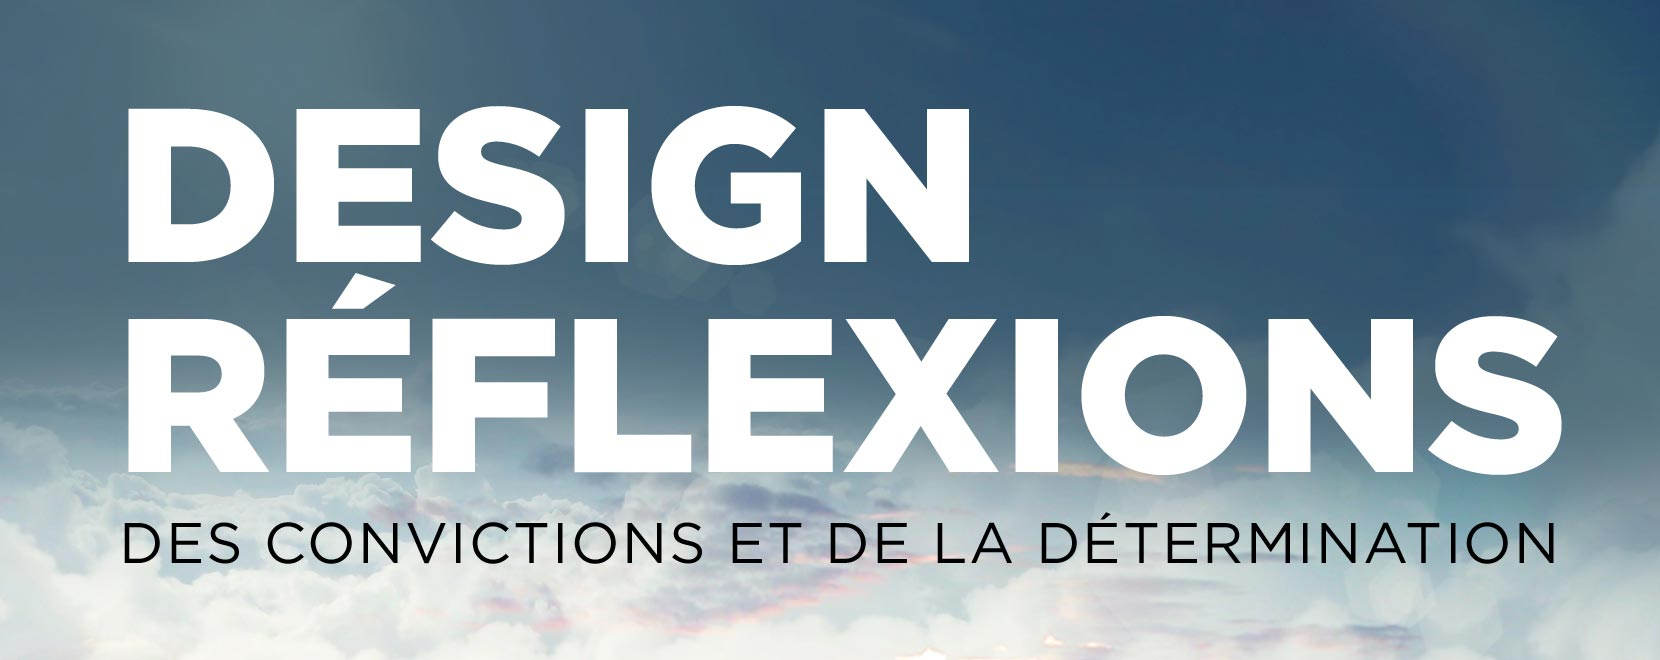 slider-design-reflexion